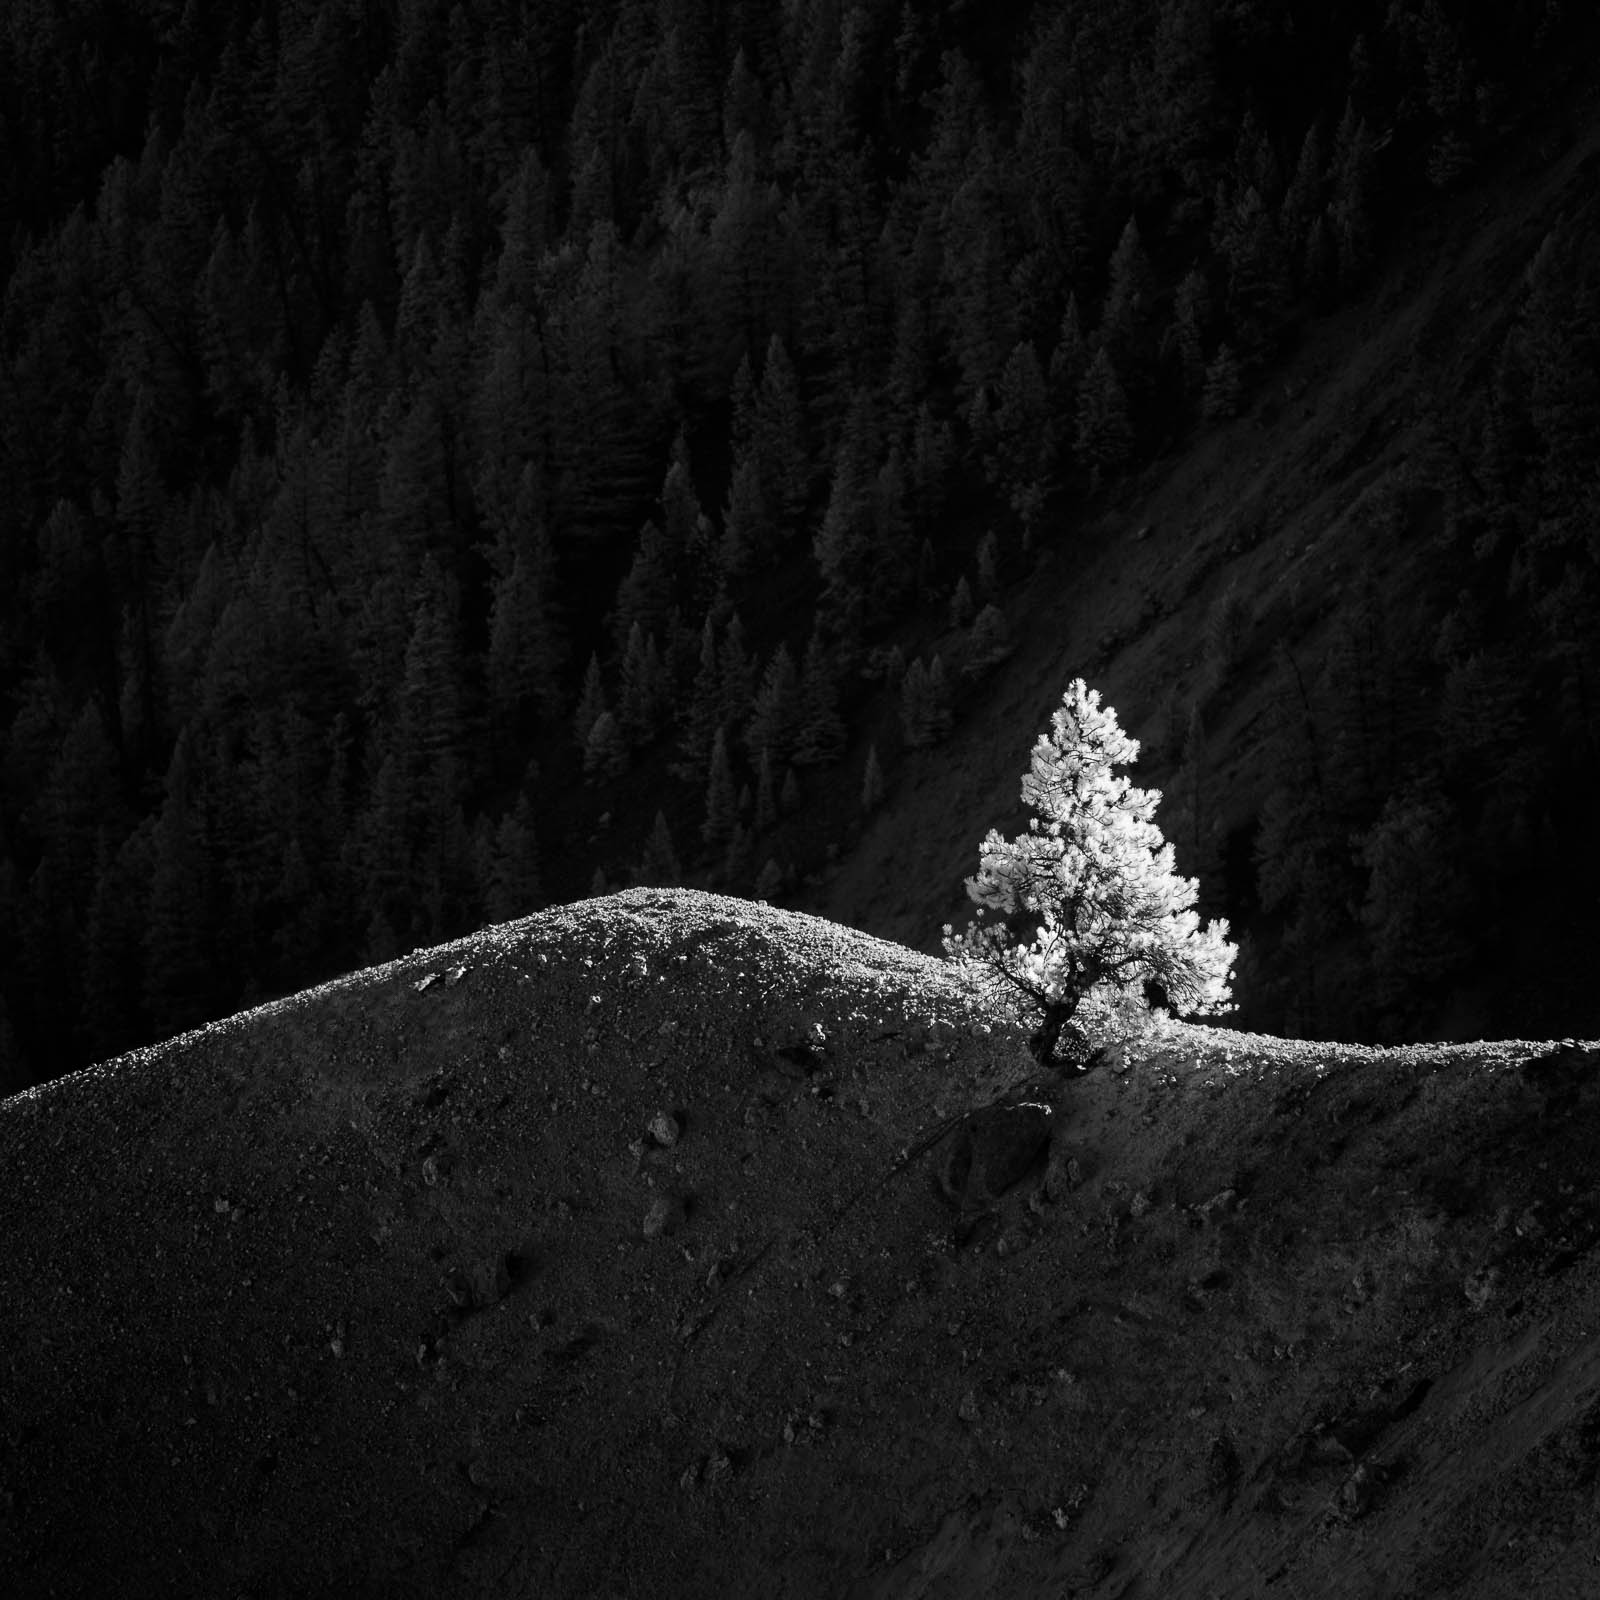 Wyoming, black and white, infrared, monochrome, square, tree, yellowstone national park, ynp, rocky mountains